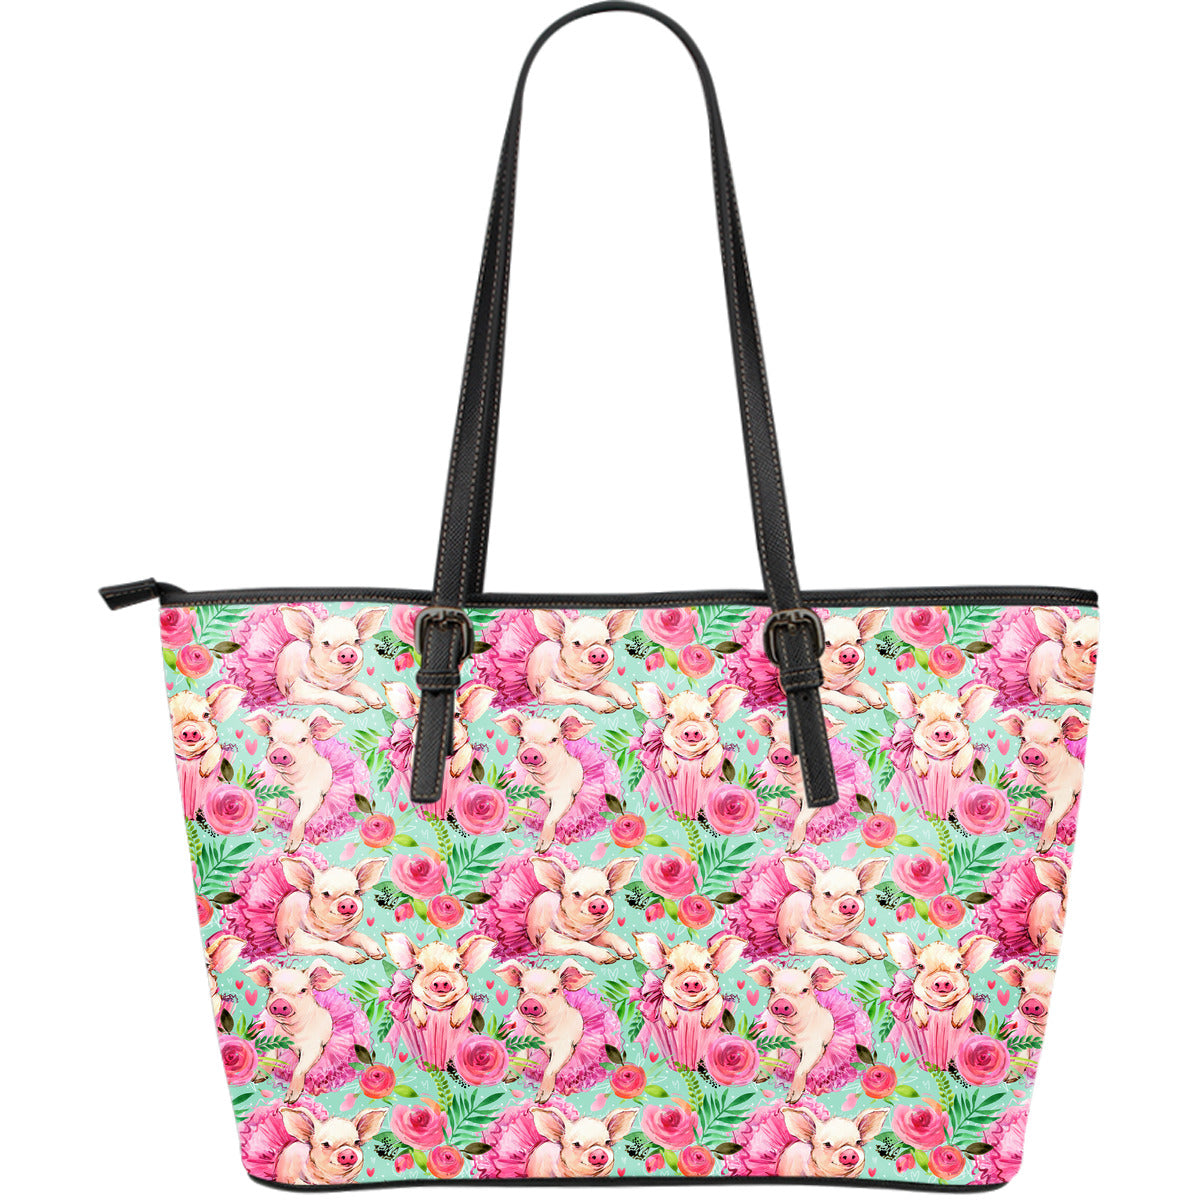 Flower Piggy Women's Leather Tote Bag